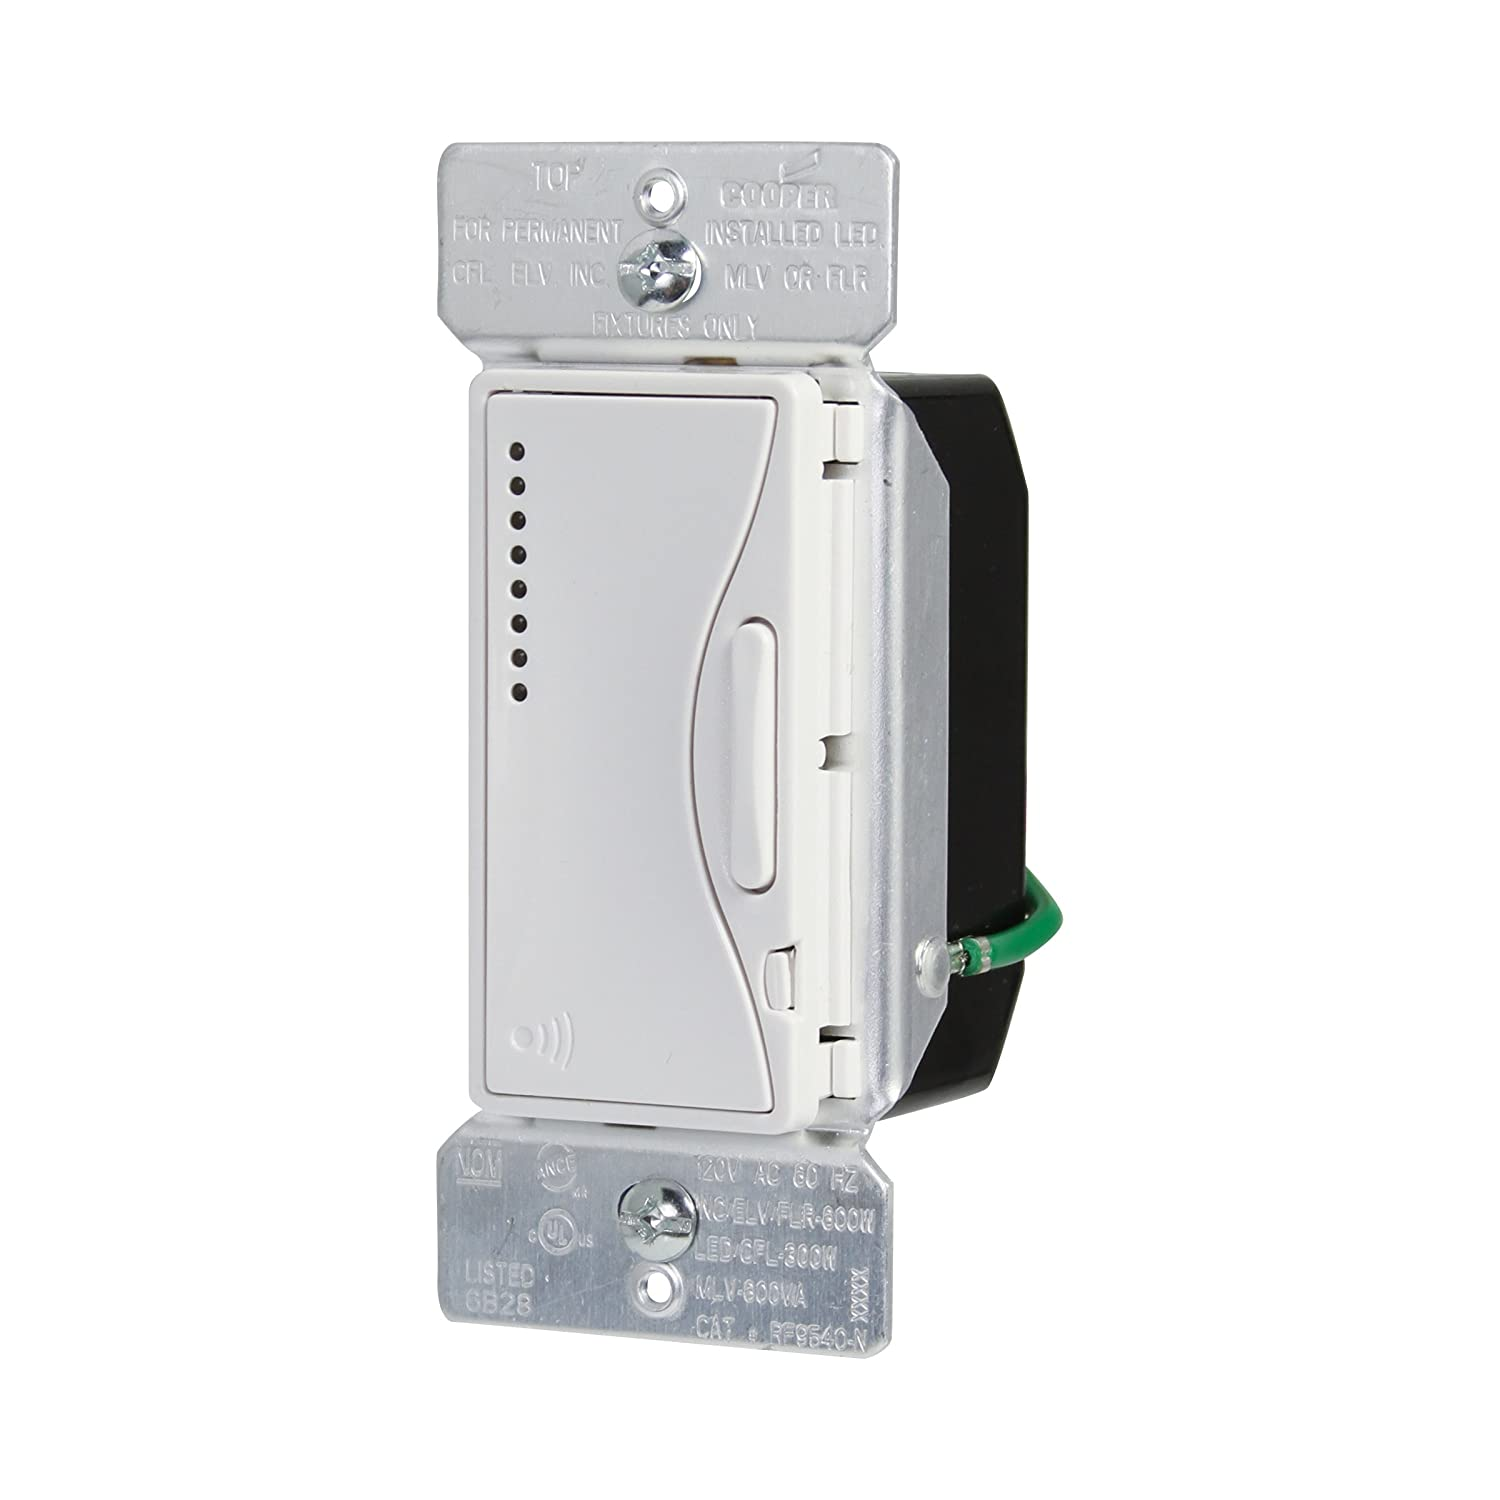 Eaton RF9540-NAW ASPIRE Single-Pole Multi-Location Master Dimmer Light  Switch, Alpine White - Plug In Dimmer Switches - Amazon.com